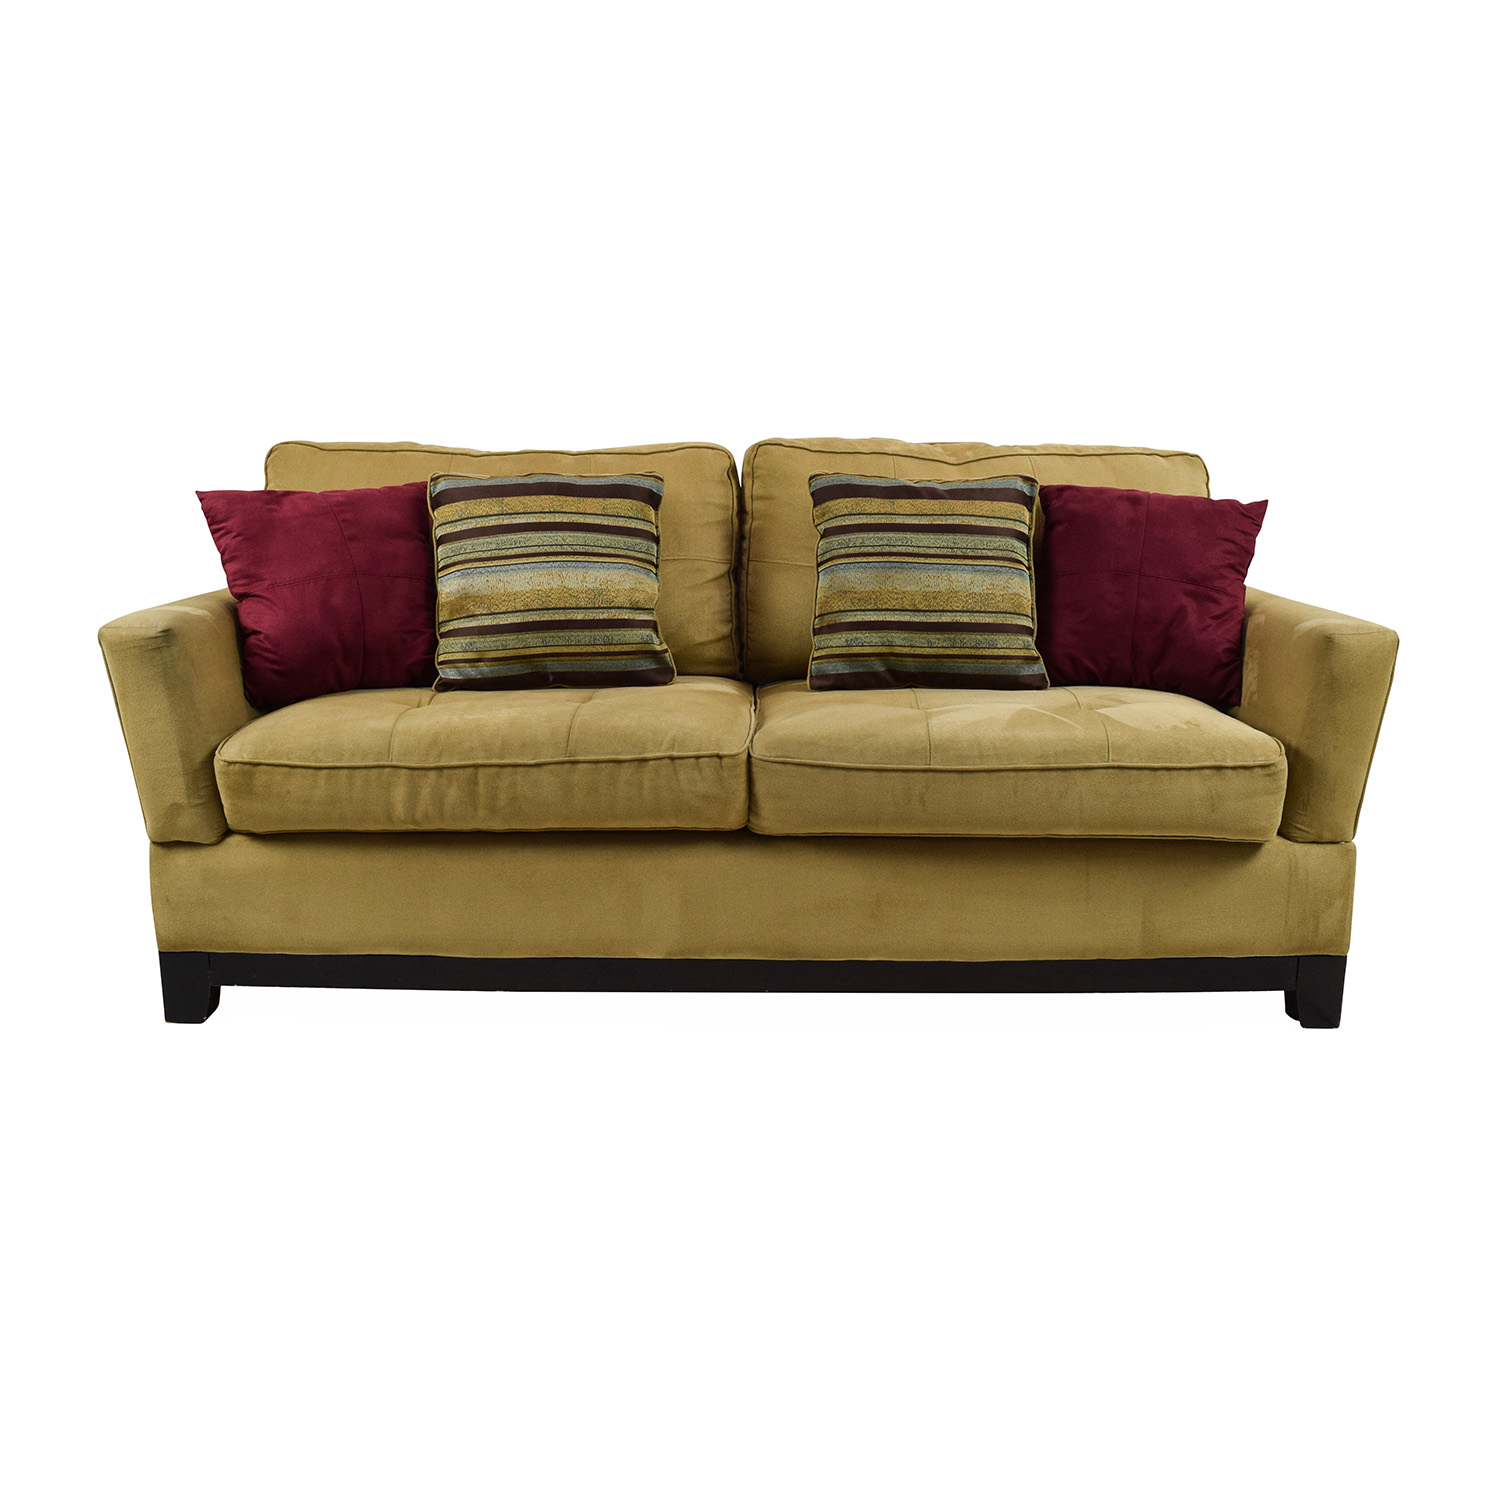 78 off jennifer convertibles jennifer convertibles tan for Classic loveseat